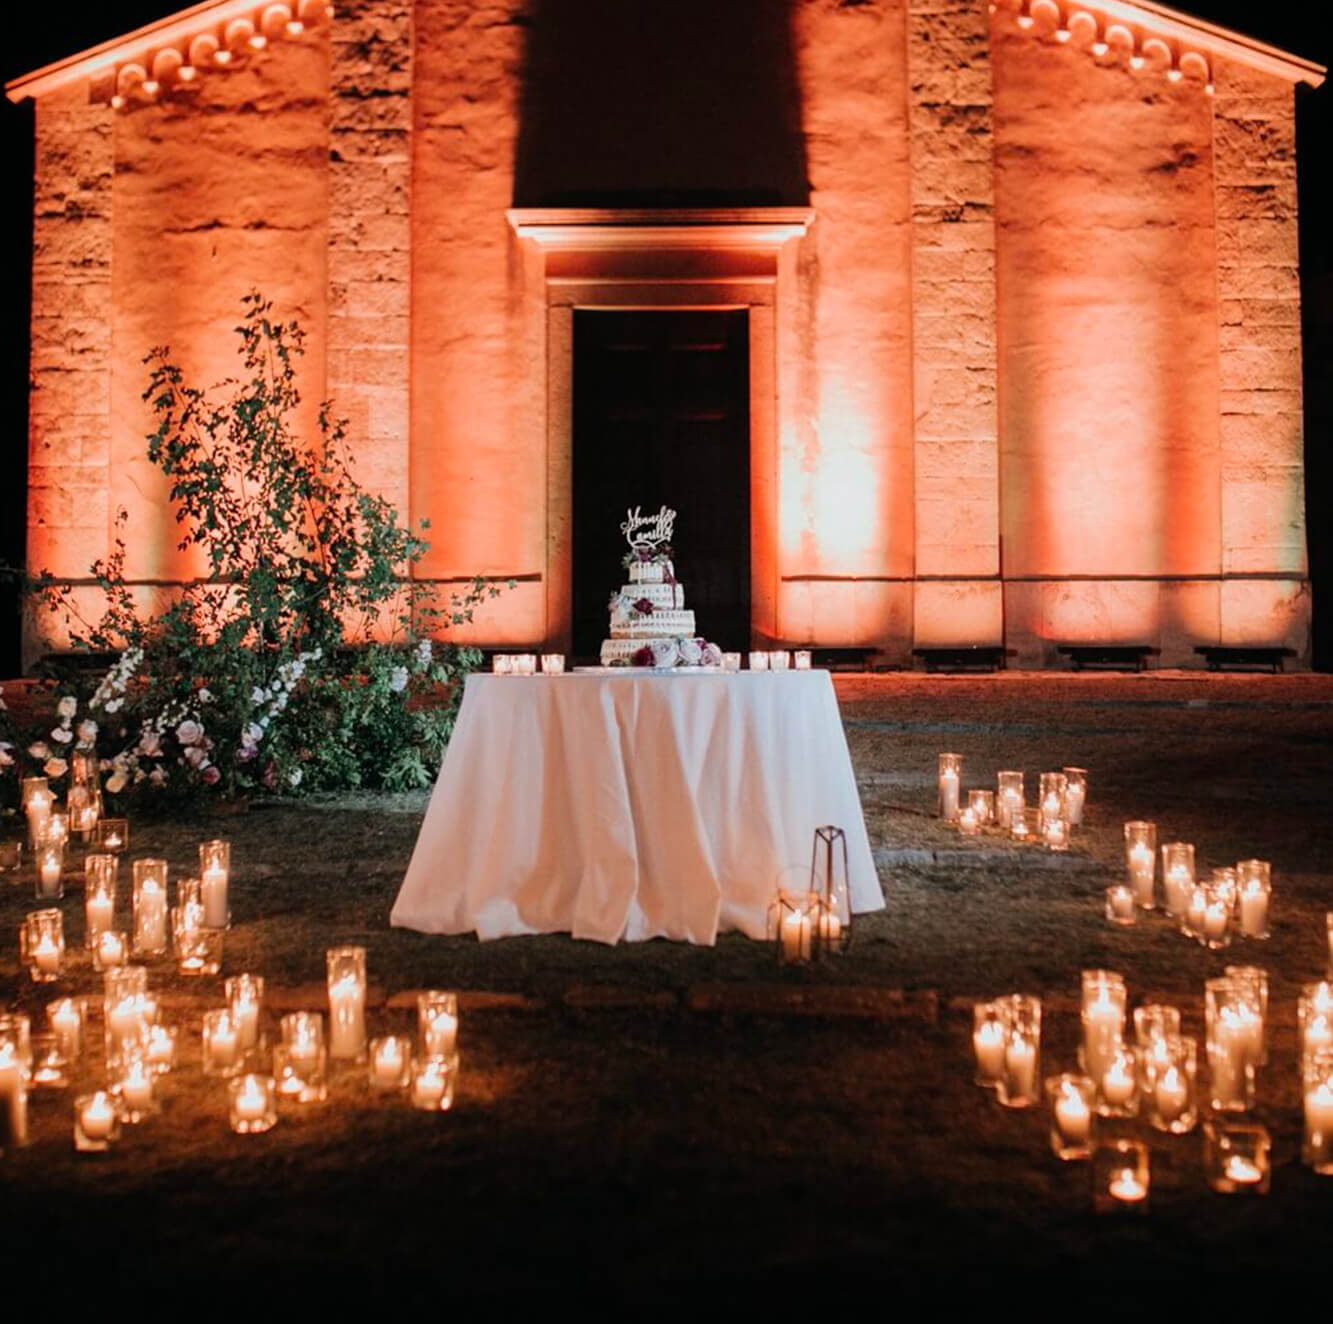 Artistic Light designer creations for your destination wedding in Tuscany, Florence, Siena, Chianti, Val d'Orcia.  Giulia Alessandri Wedding Planner, Wedding Design & Wedding Coordination in Tuscany.